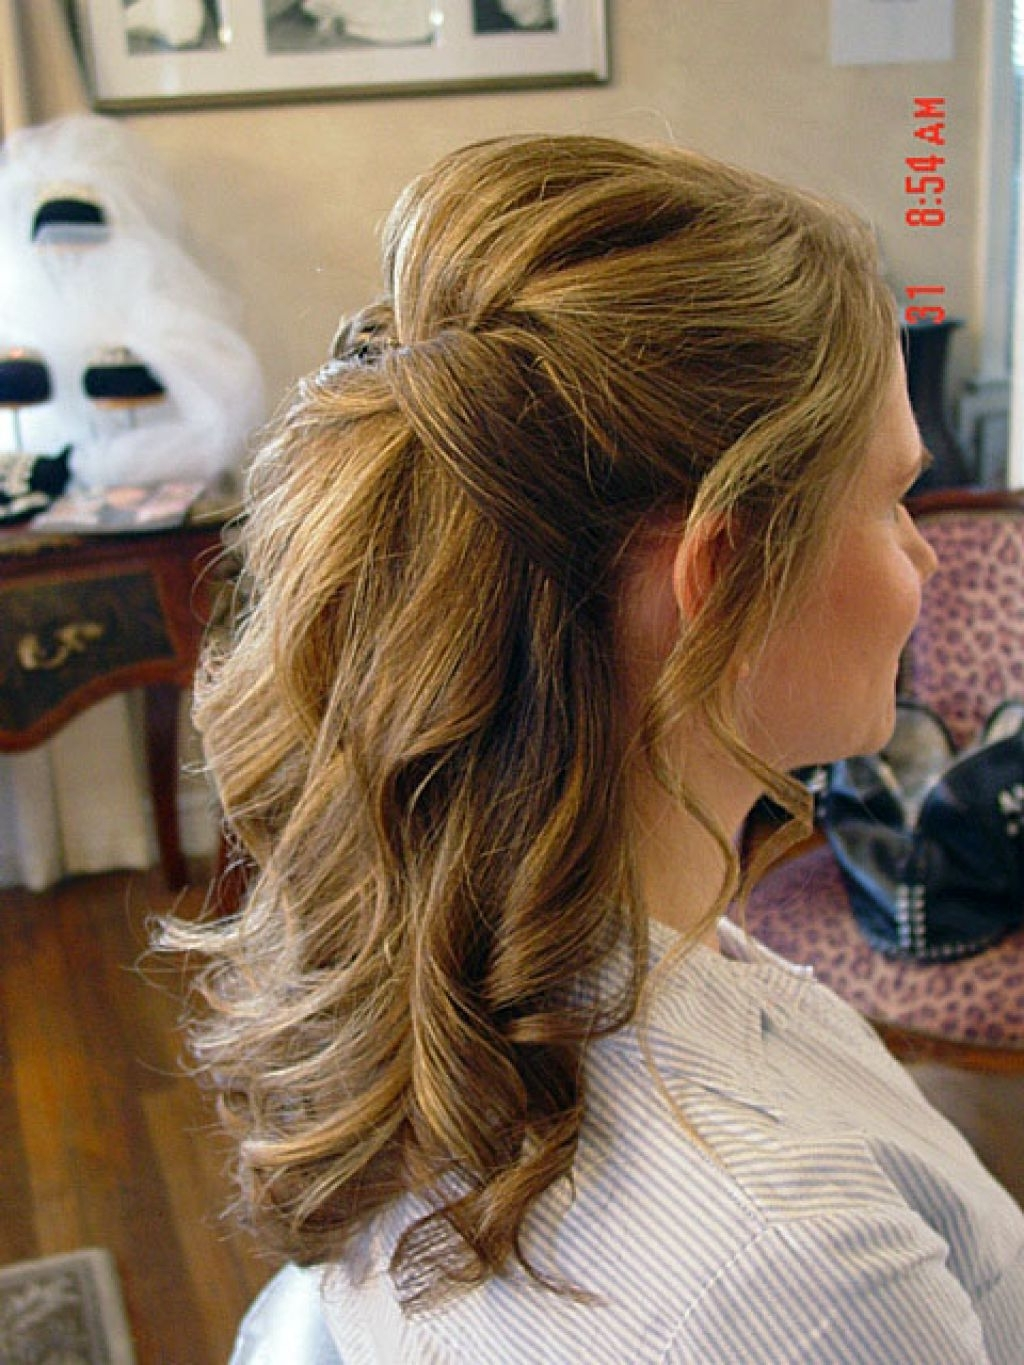 Half Up Half Down Wedding Hair Updo | Hairstyle | Pinterest Throughout Half Updo Hairstyles For Medium Hair (View 10 of 15)